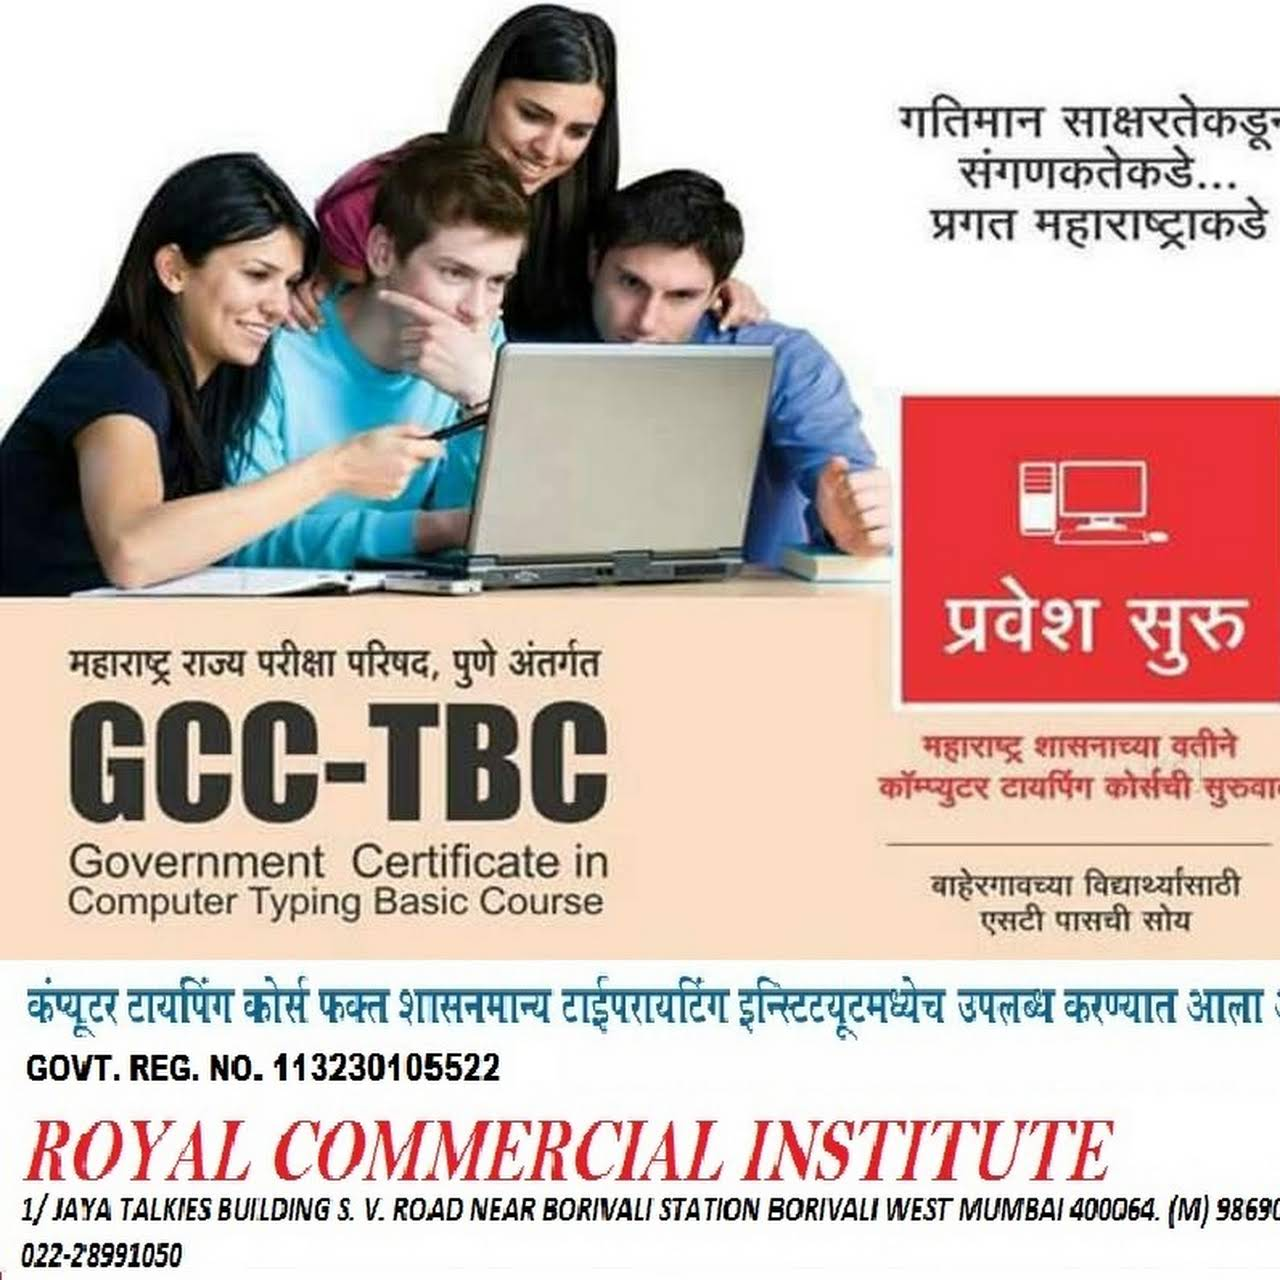 ROYAL COMPUTER & COMMERCIAL INSTITUTE - Computer Training